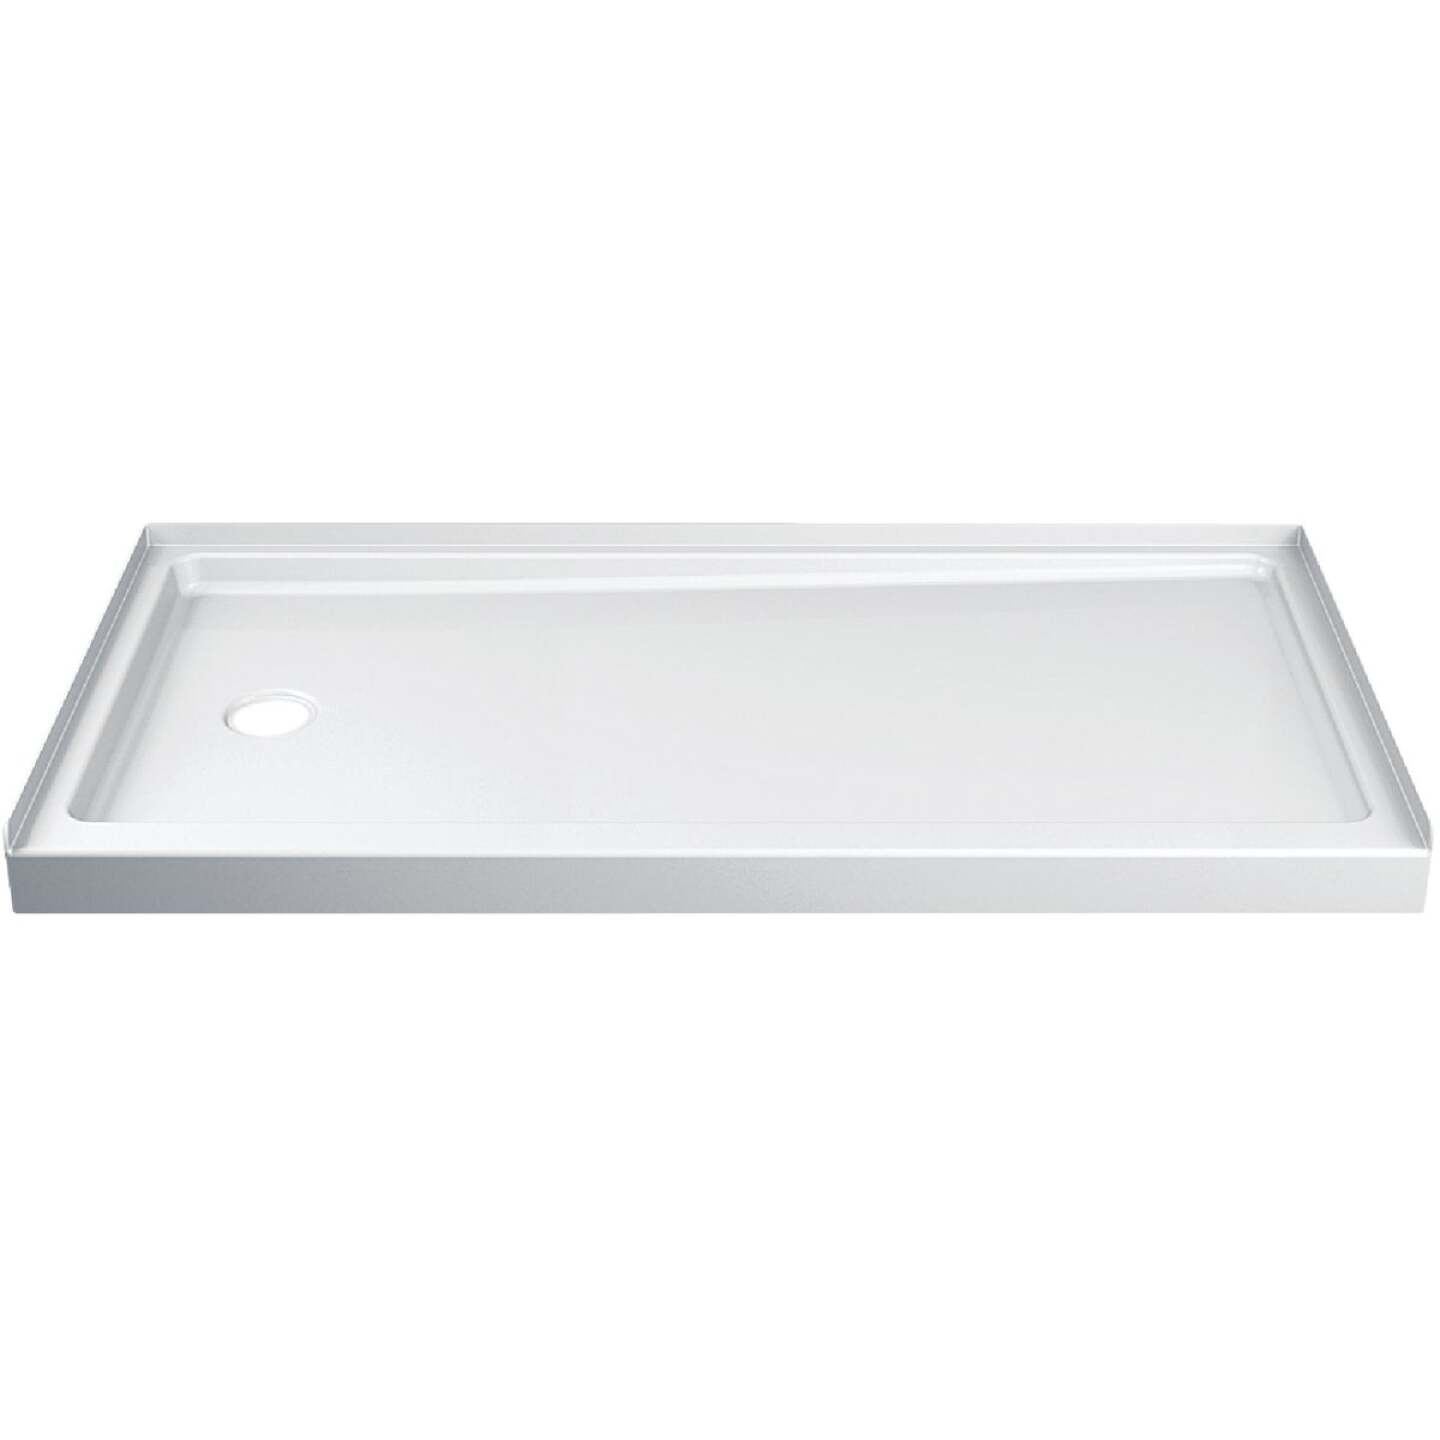 Delta Hycroft 60 In. W x 30 In. D Left Drain Shower Floor & Base in White Image 1